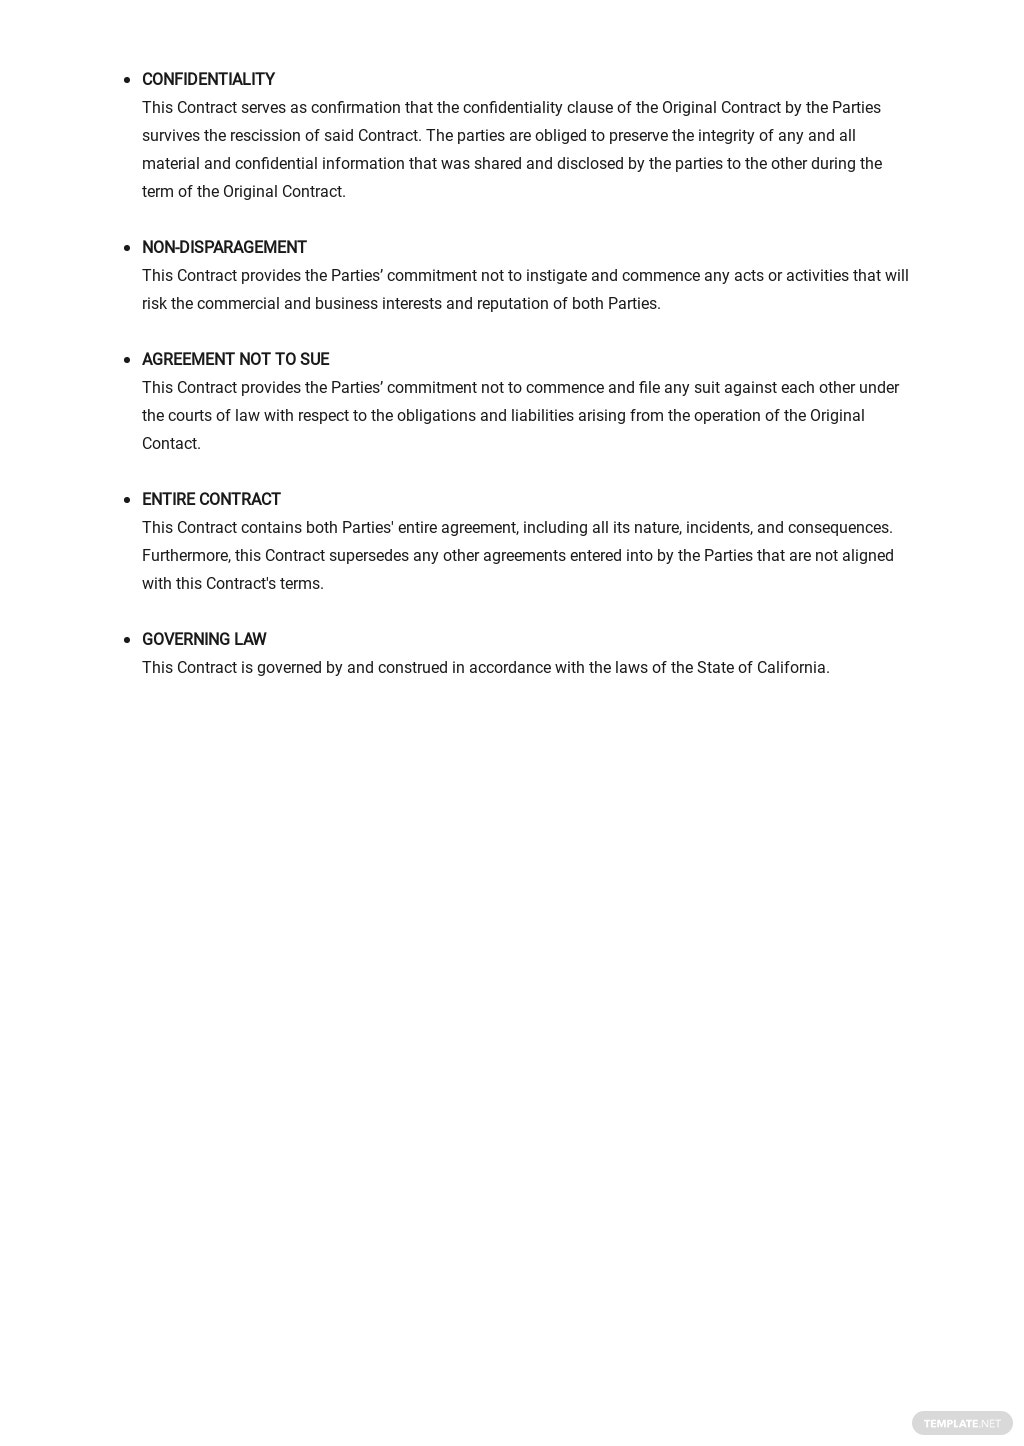 Restaurant Mutual Rescission of Contract and Release Template 2.jpe